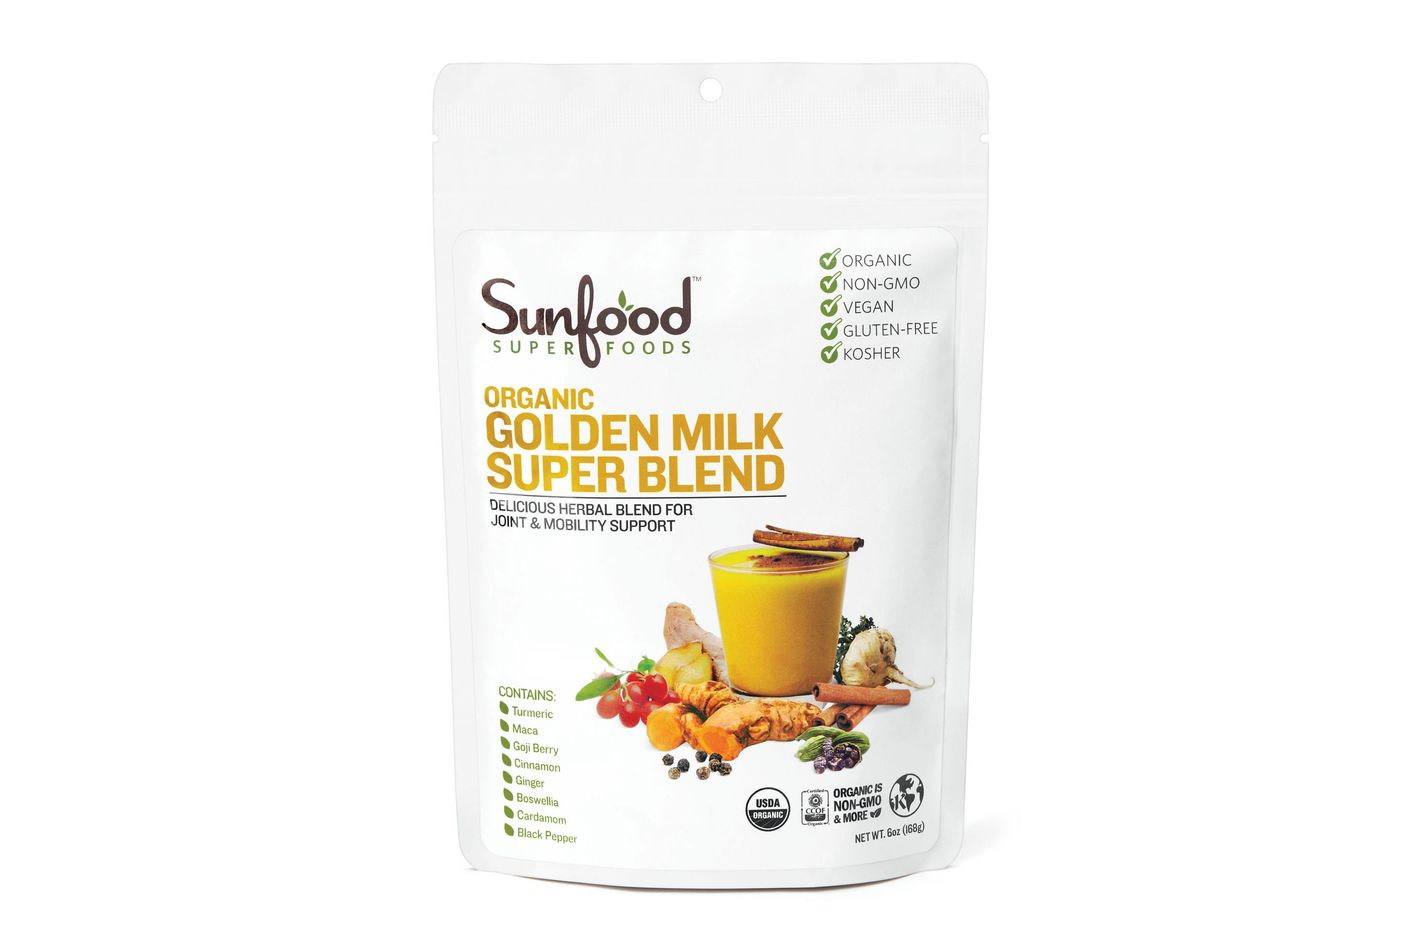 Sun Food Super Foods Organic Golden Milk Super Blend